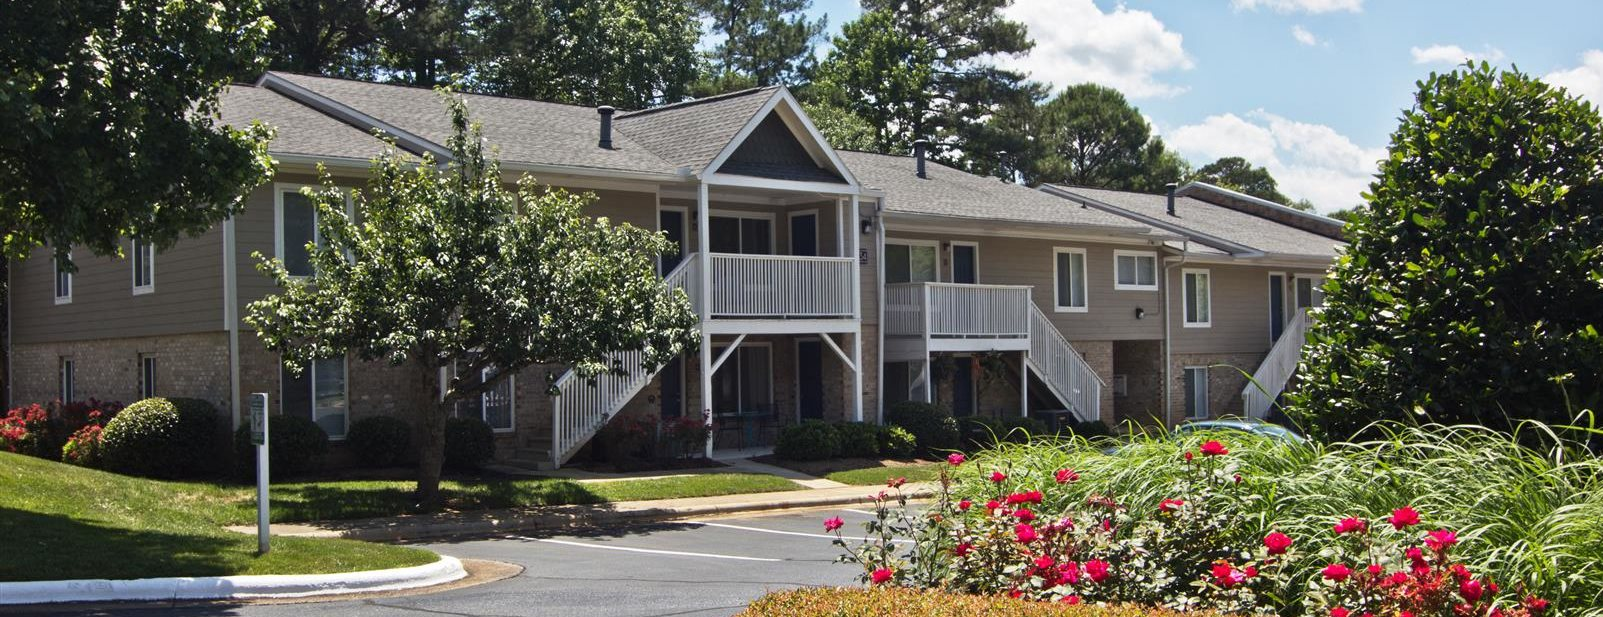 Cary Pines Apartments In Cary Nc